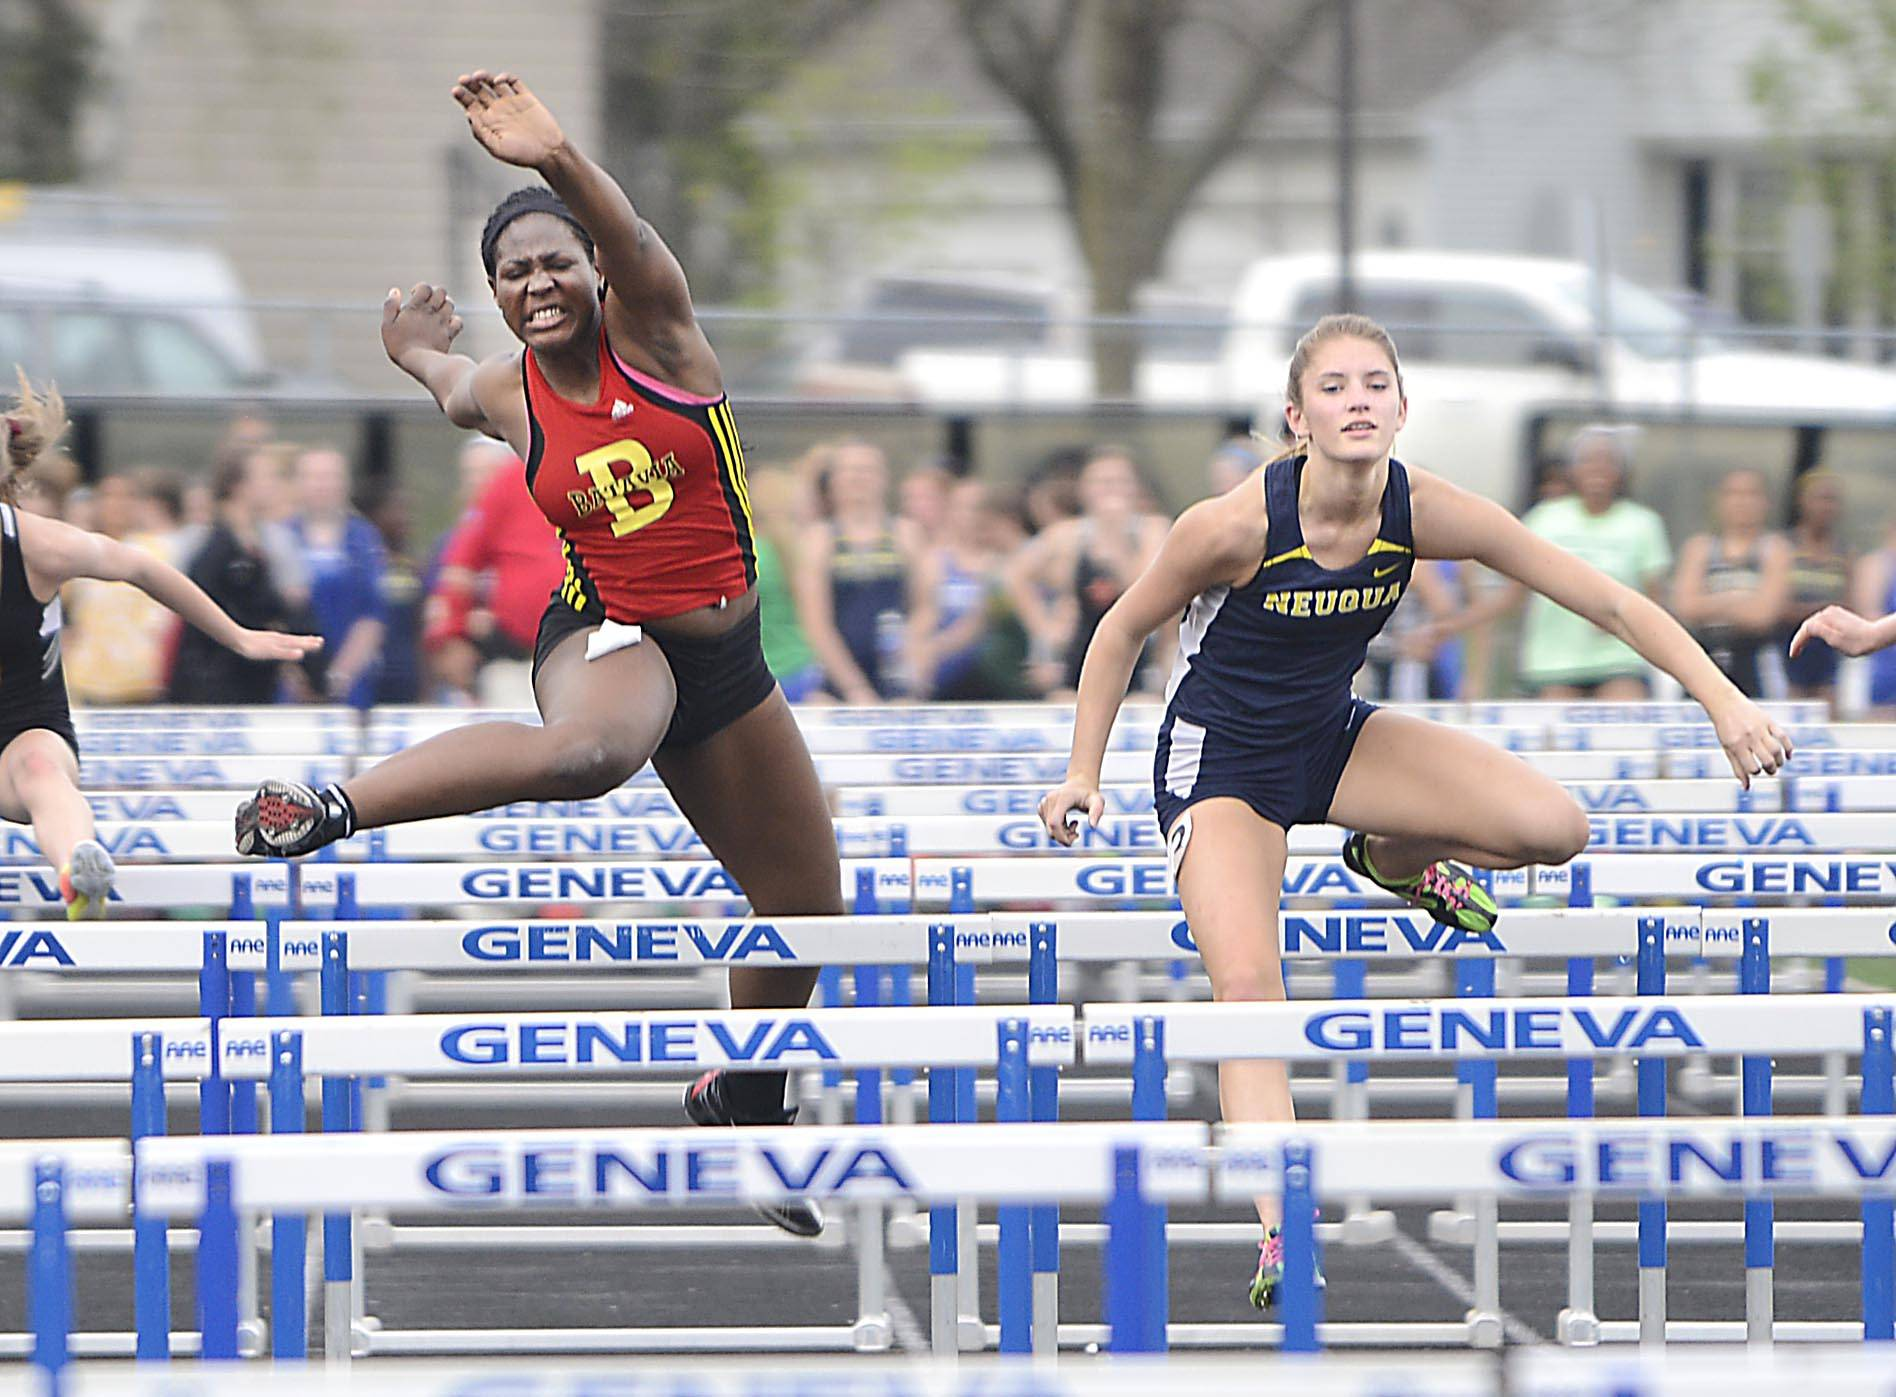 Batavia's Leah Narup loses her steps and gives the lead to Neuqua Valley's Kenna Lonergan, who won the 100 meter hurdles Thursday at the Upstate Eight Conference girls track meet at Geneva High School.